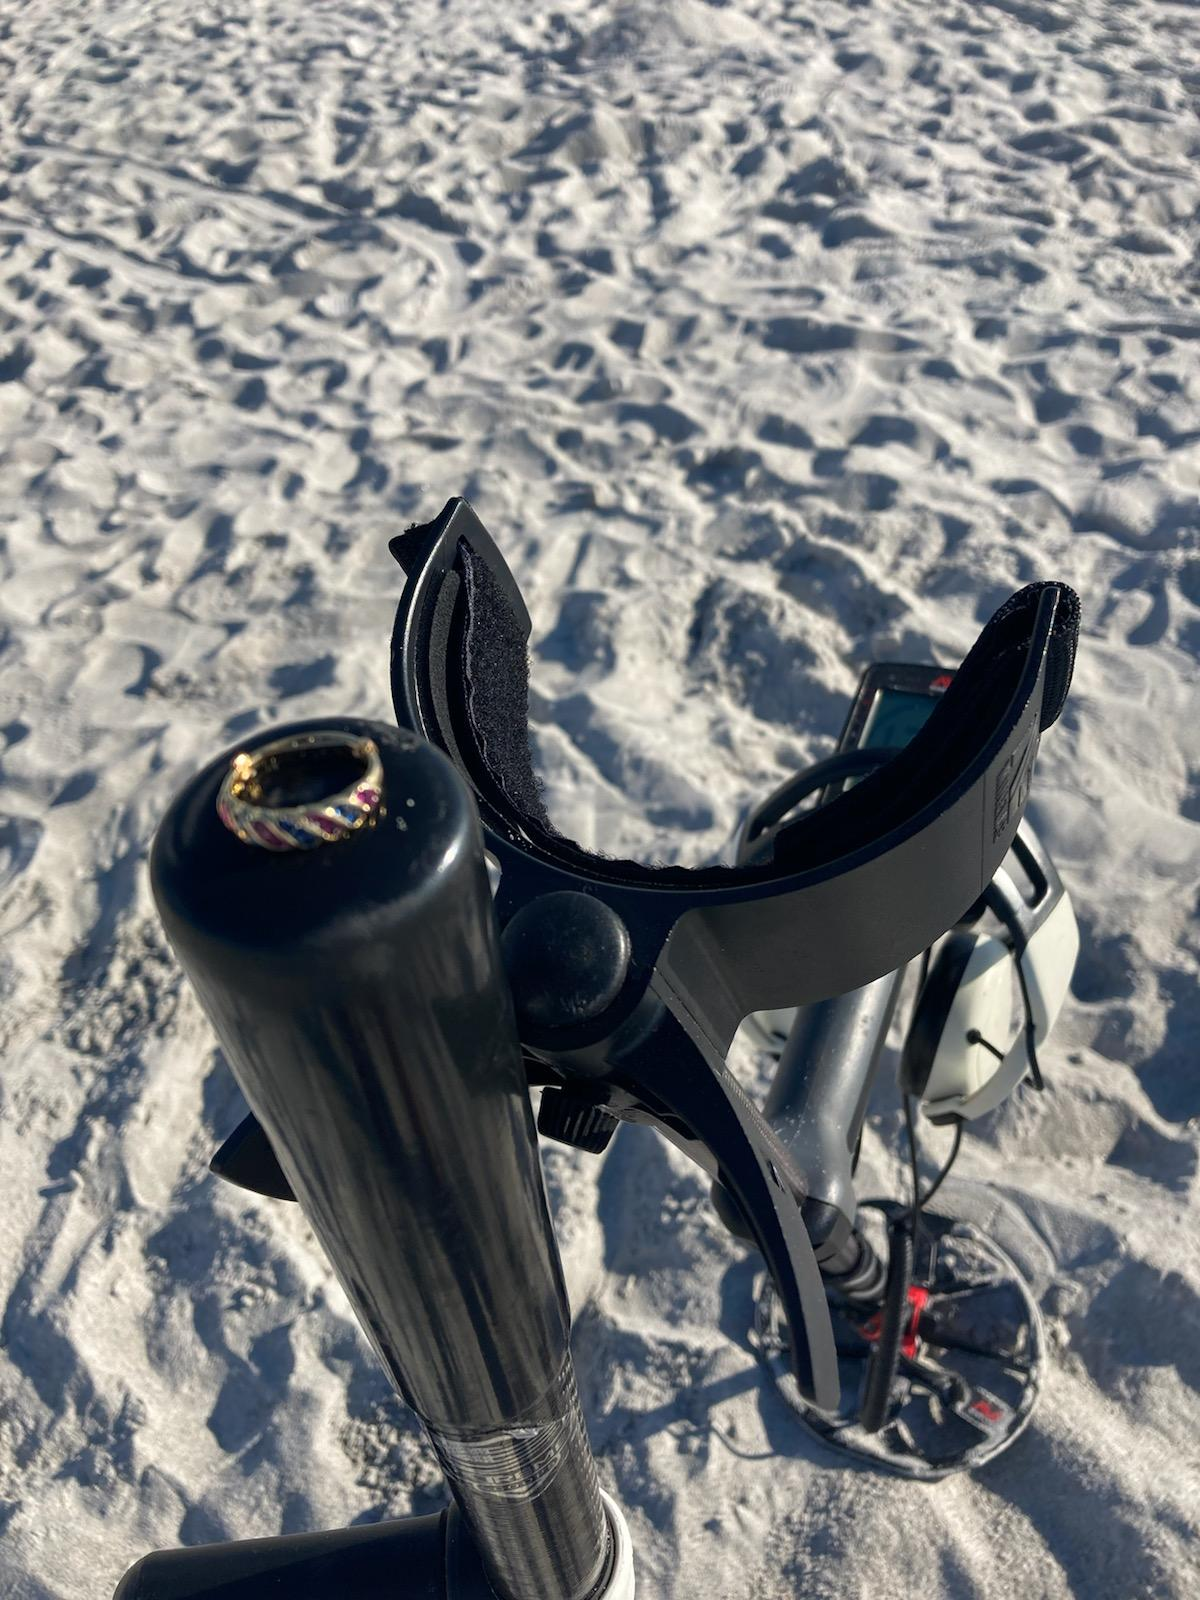 RING LOST IN ON FORT DESOTO BEACH, RECOVERED BY SRARC